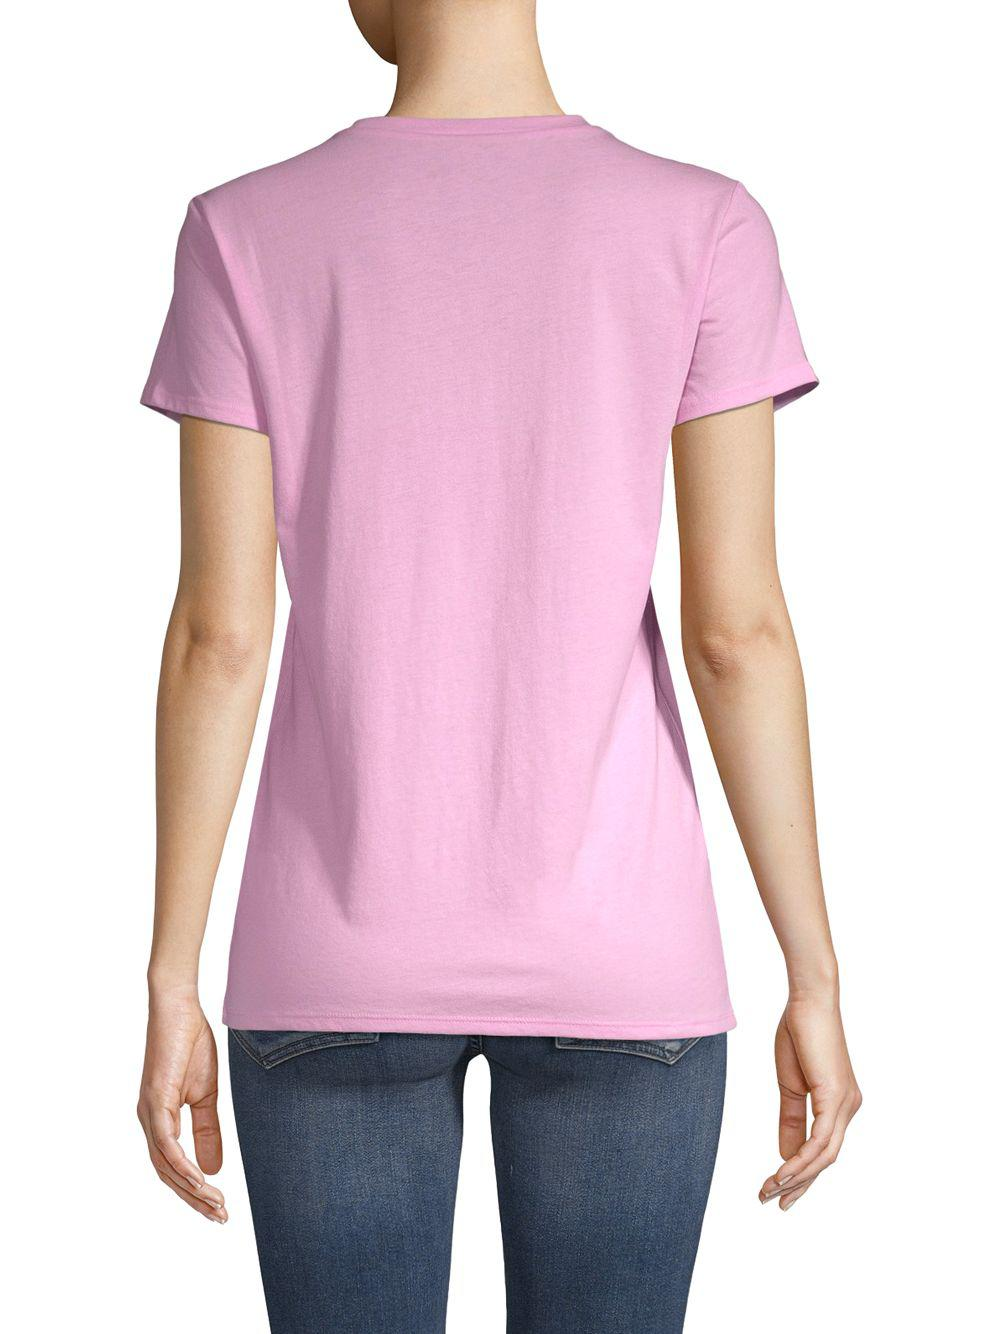 cdde1dec Lyst - Juicy Couture Graphic Short-sleeve Tee in Pink